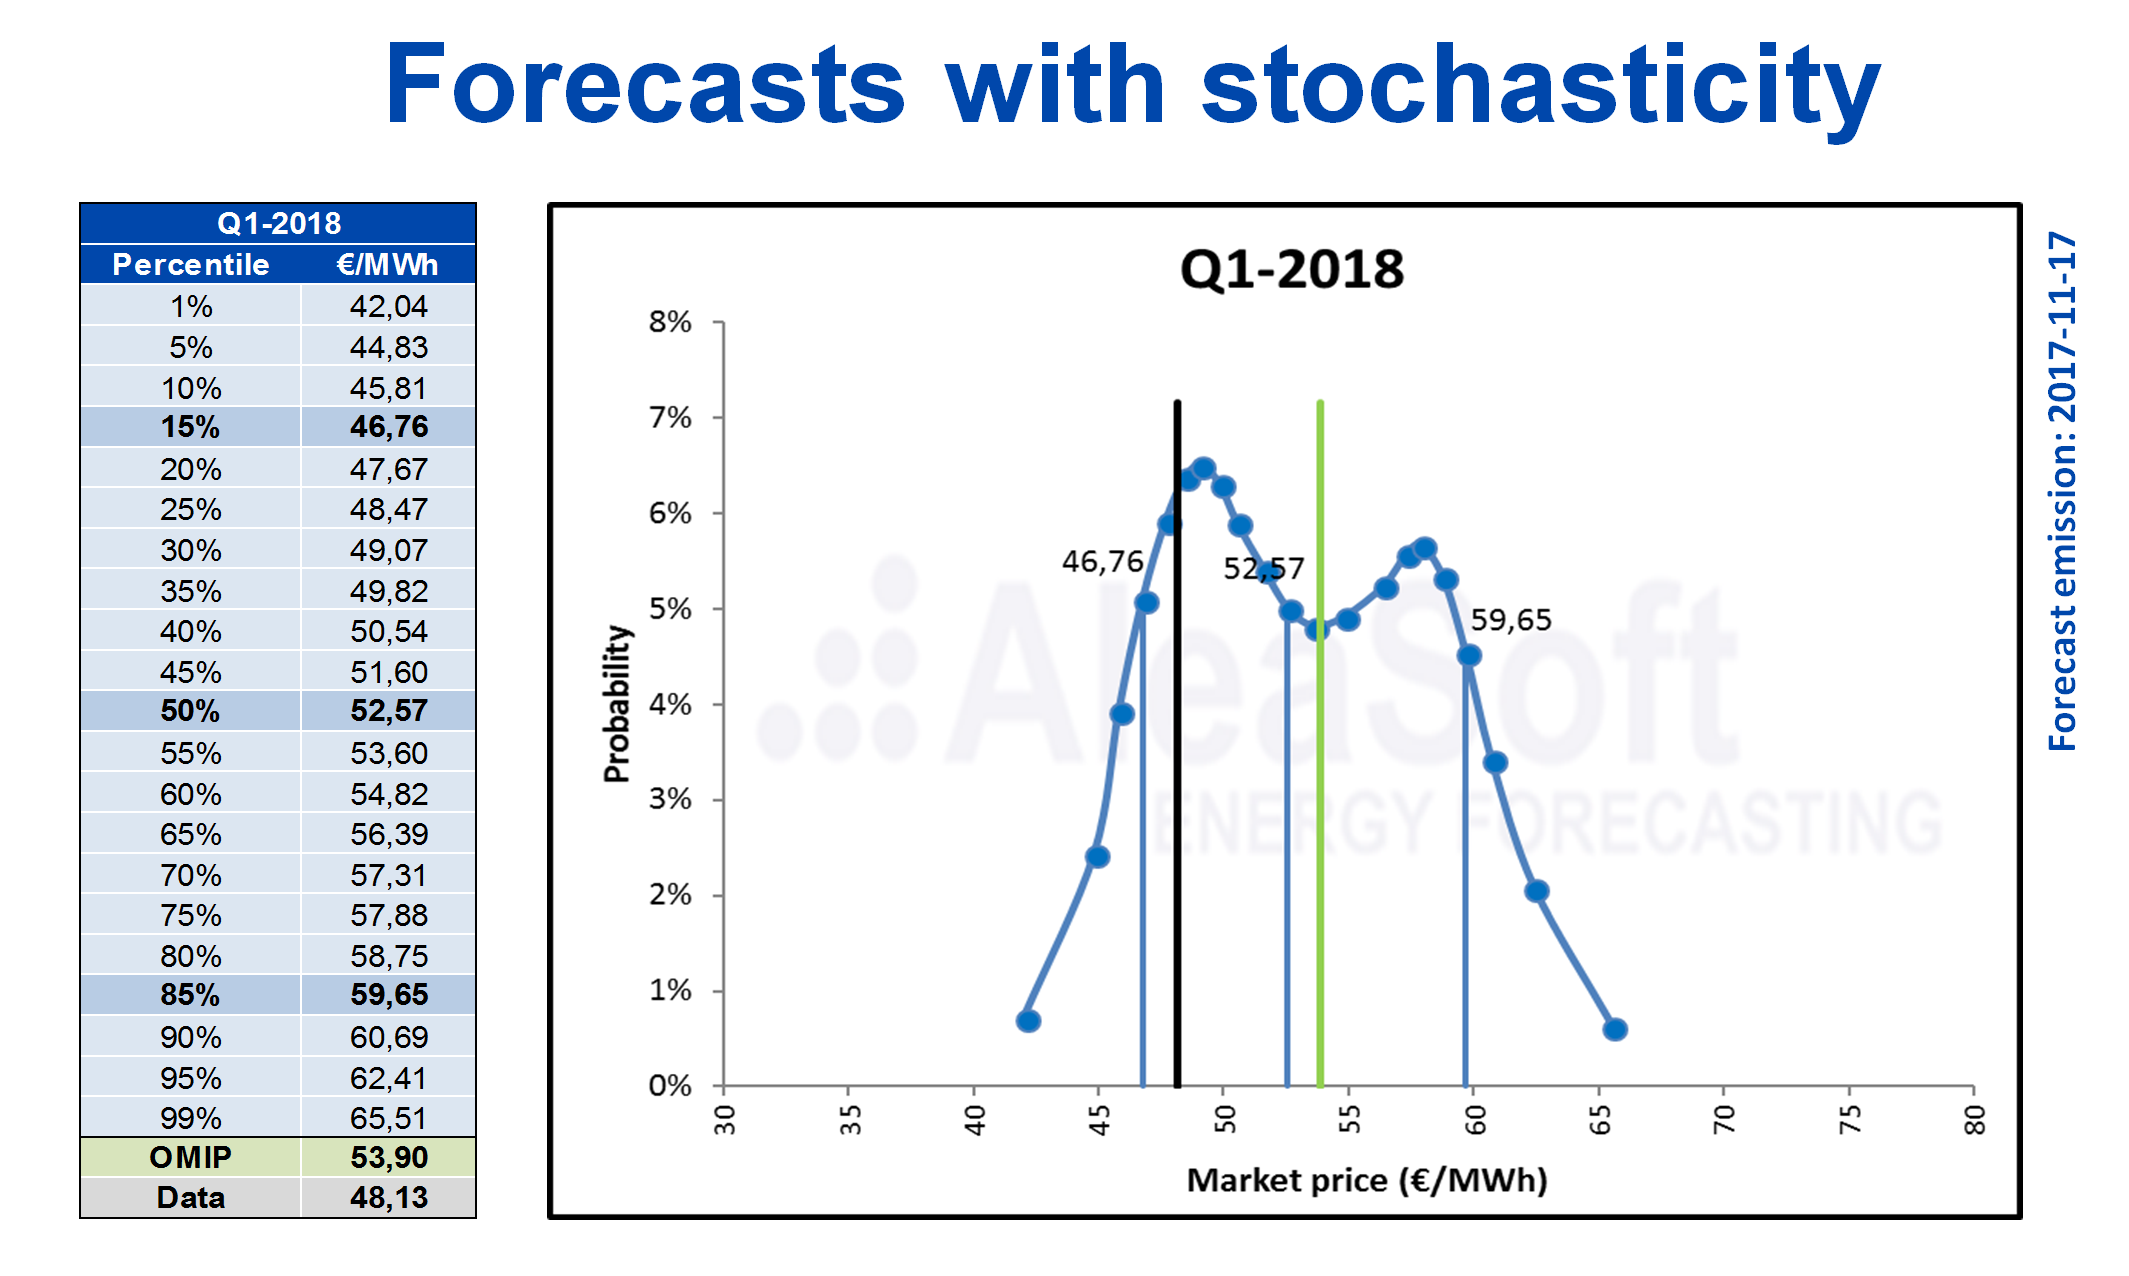 AleaSoft - Electricity price forecast stochasticity